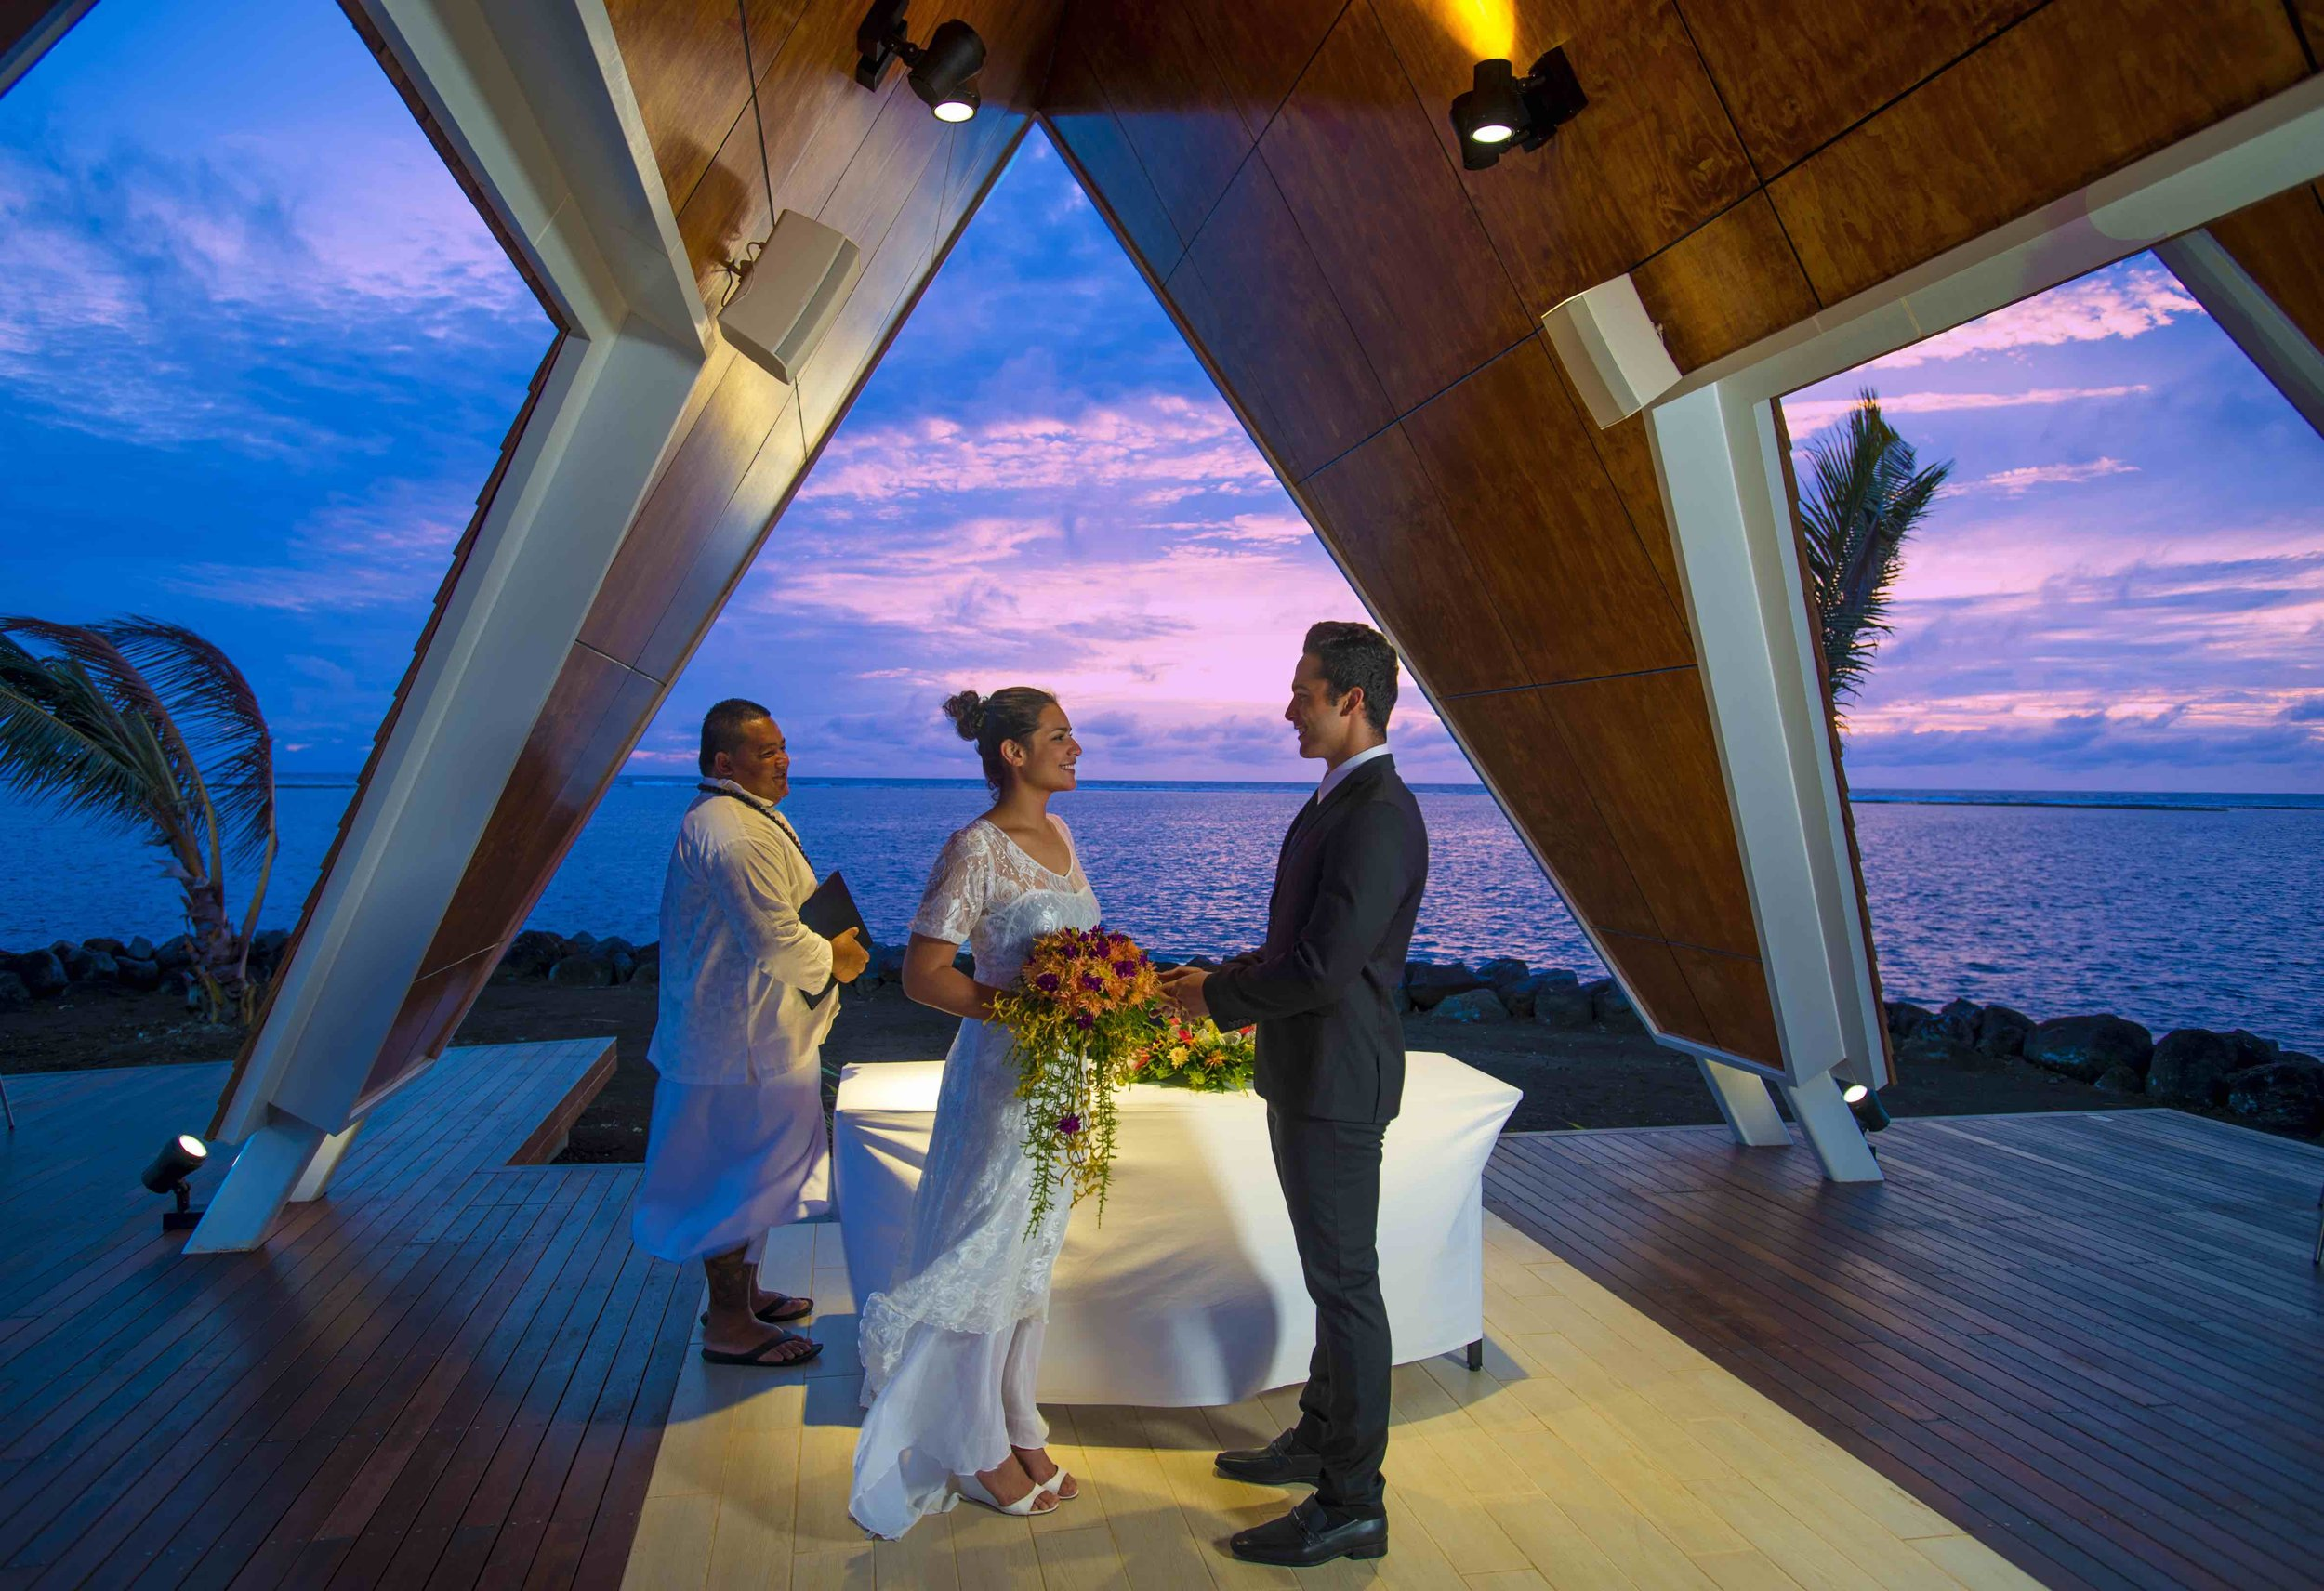 wedding_ceremony_couple_sunset_samoa_taumeasina_island.jpg